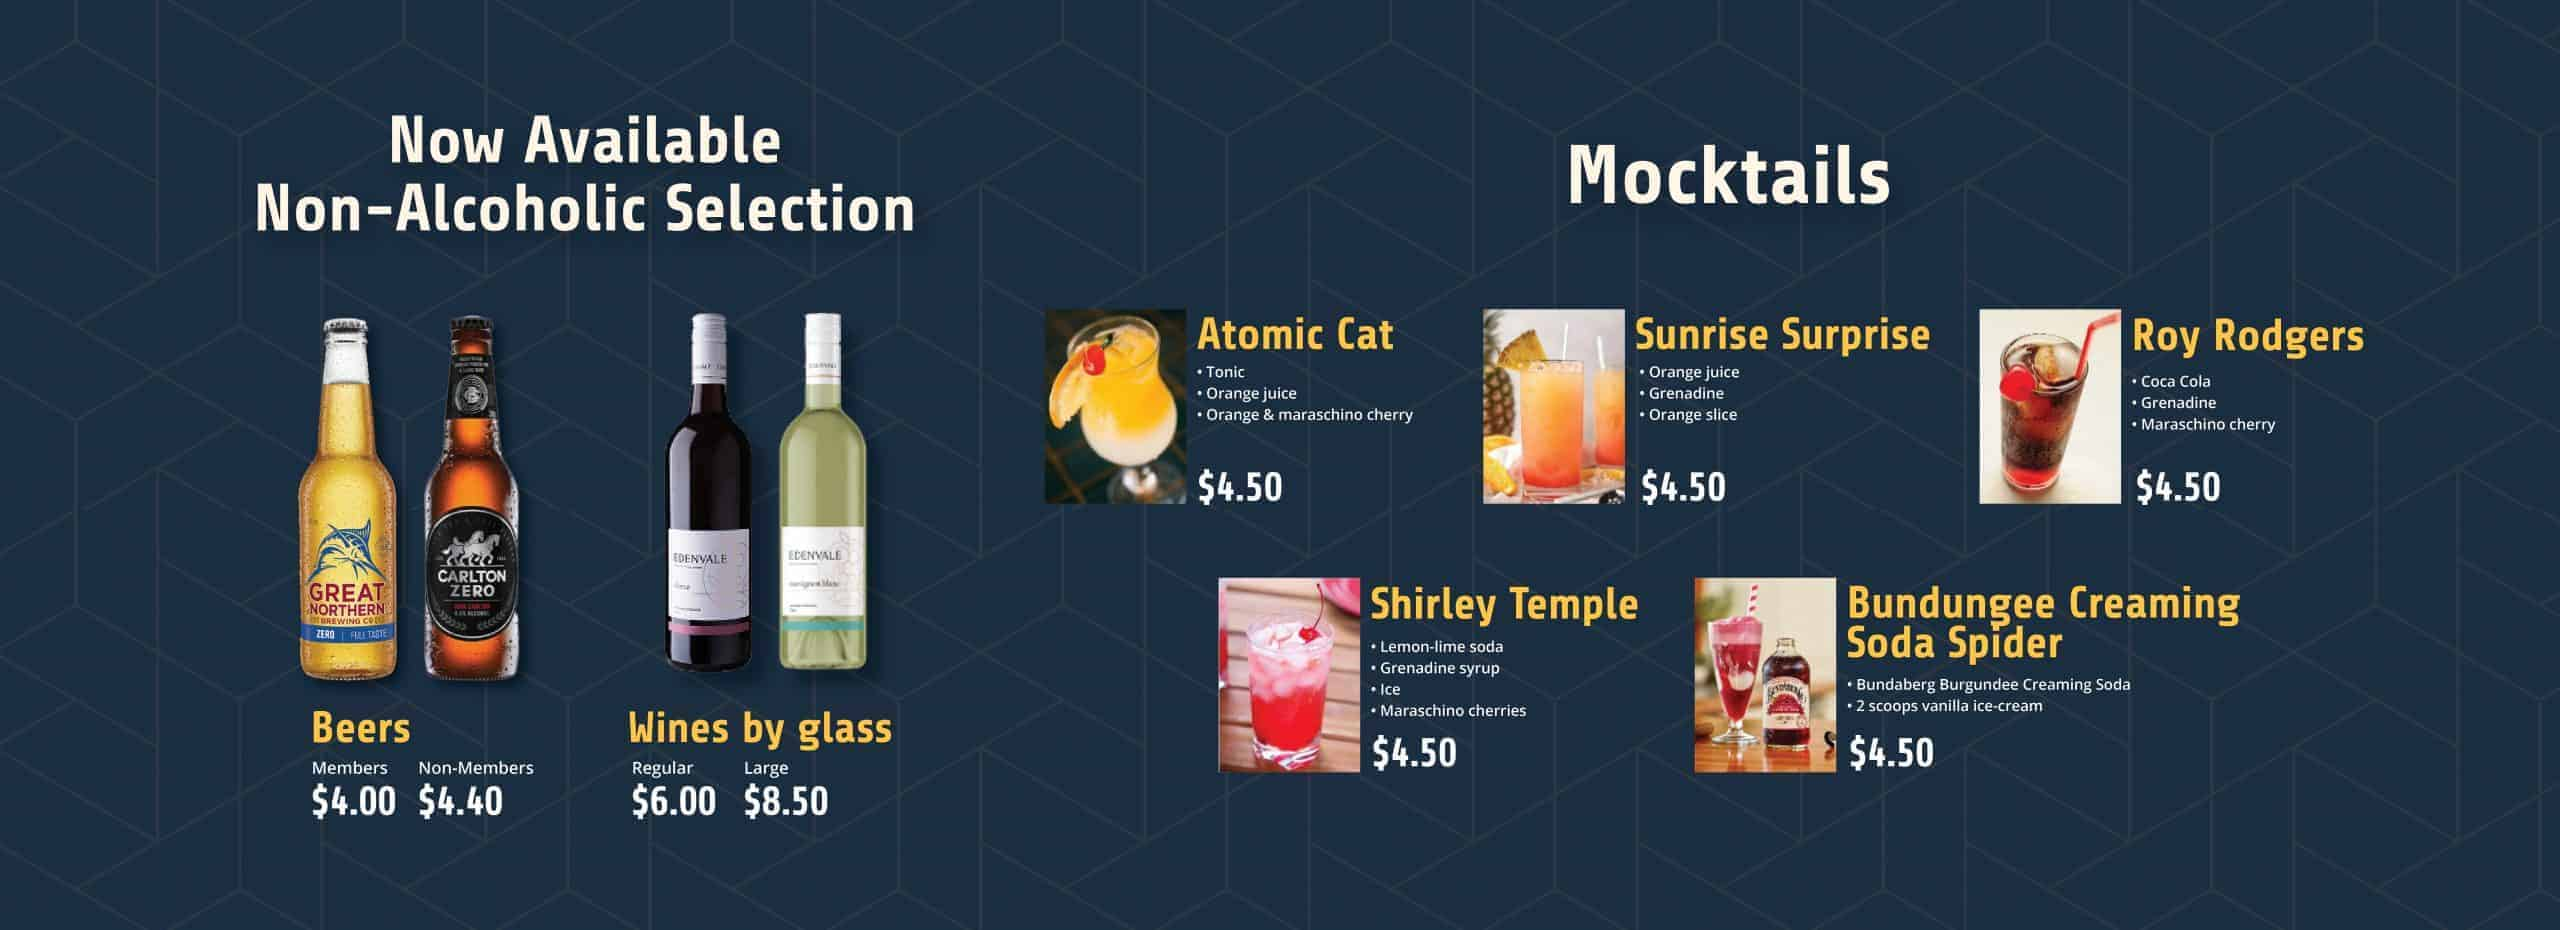 Non-Alcoholic-drinks Morwell Bowls